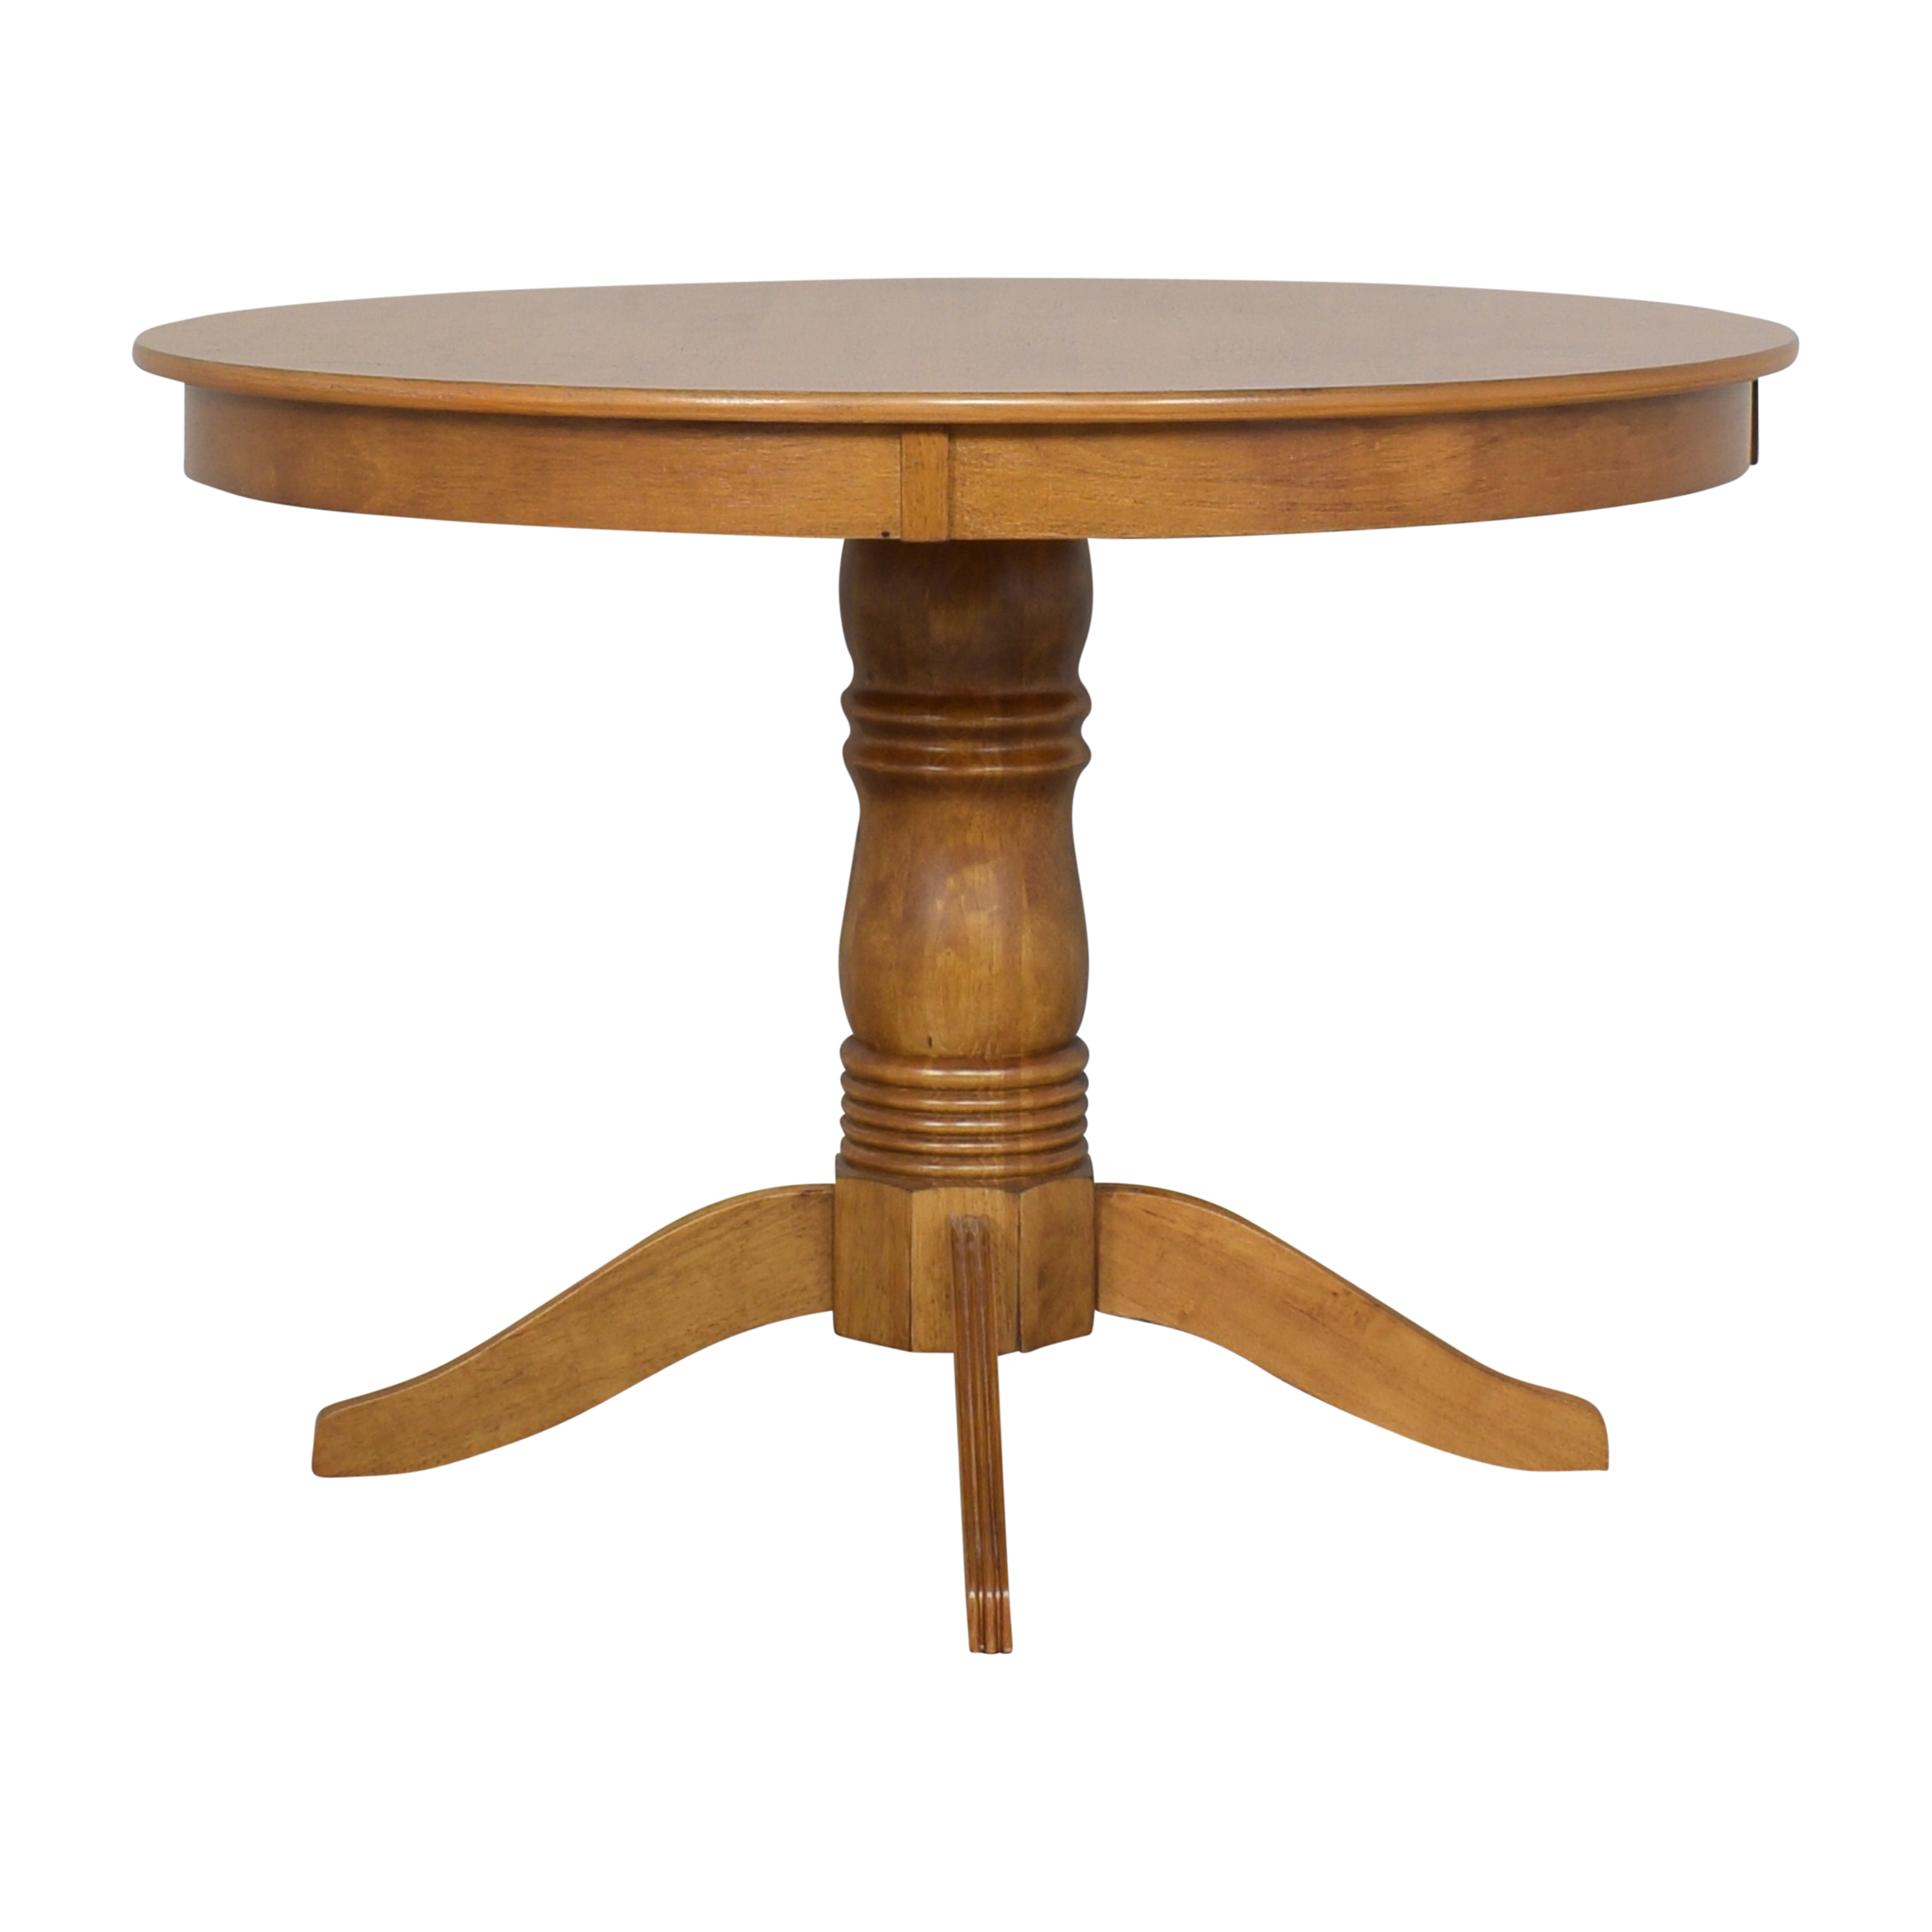 Round Pedestal Dining Table on sale